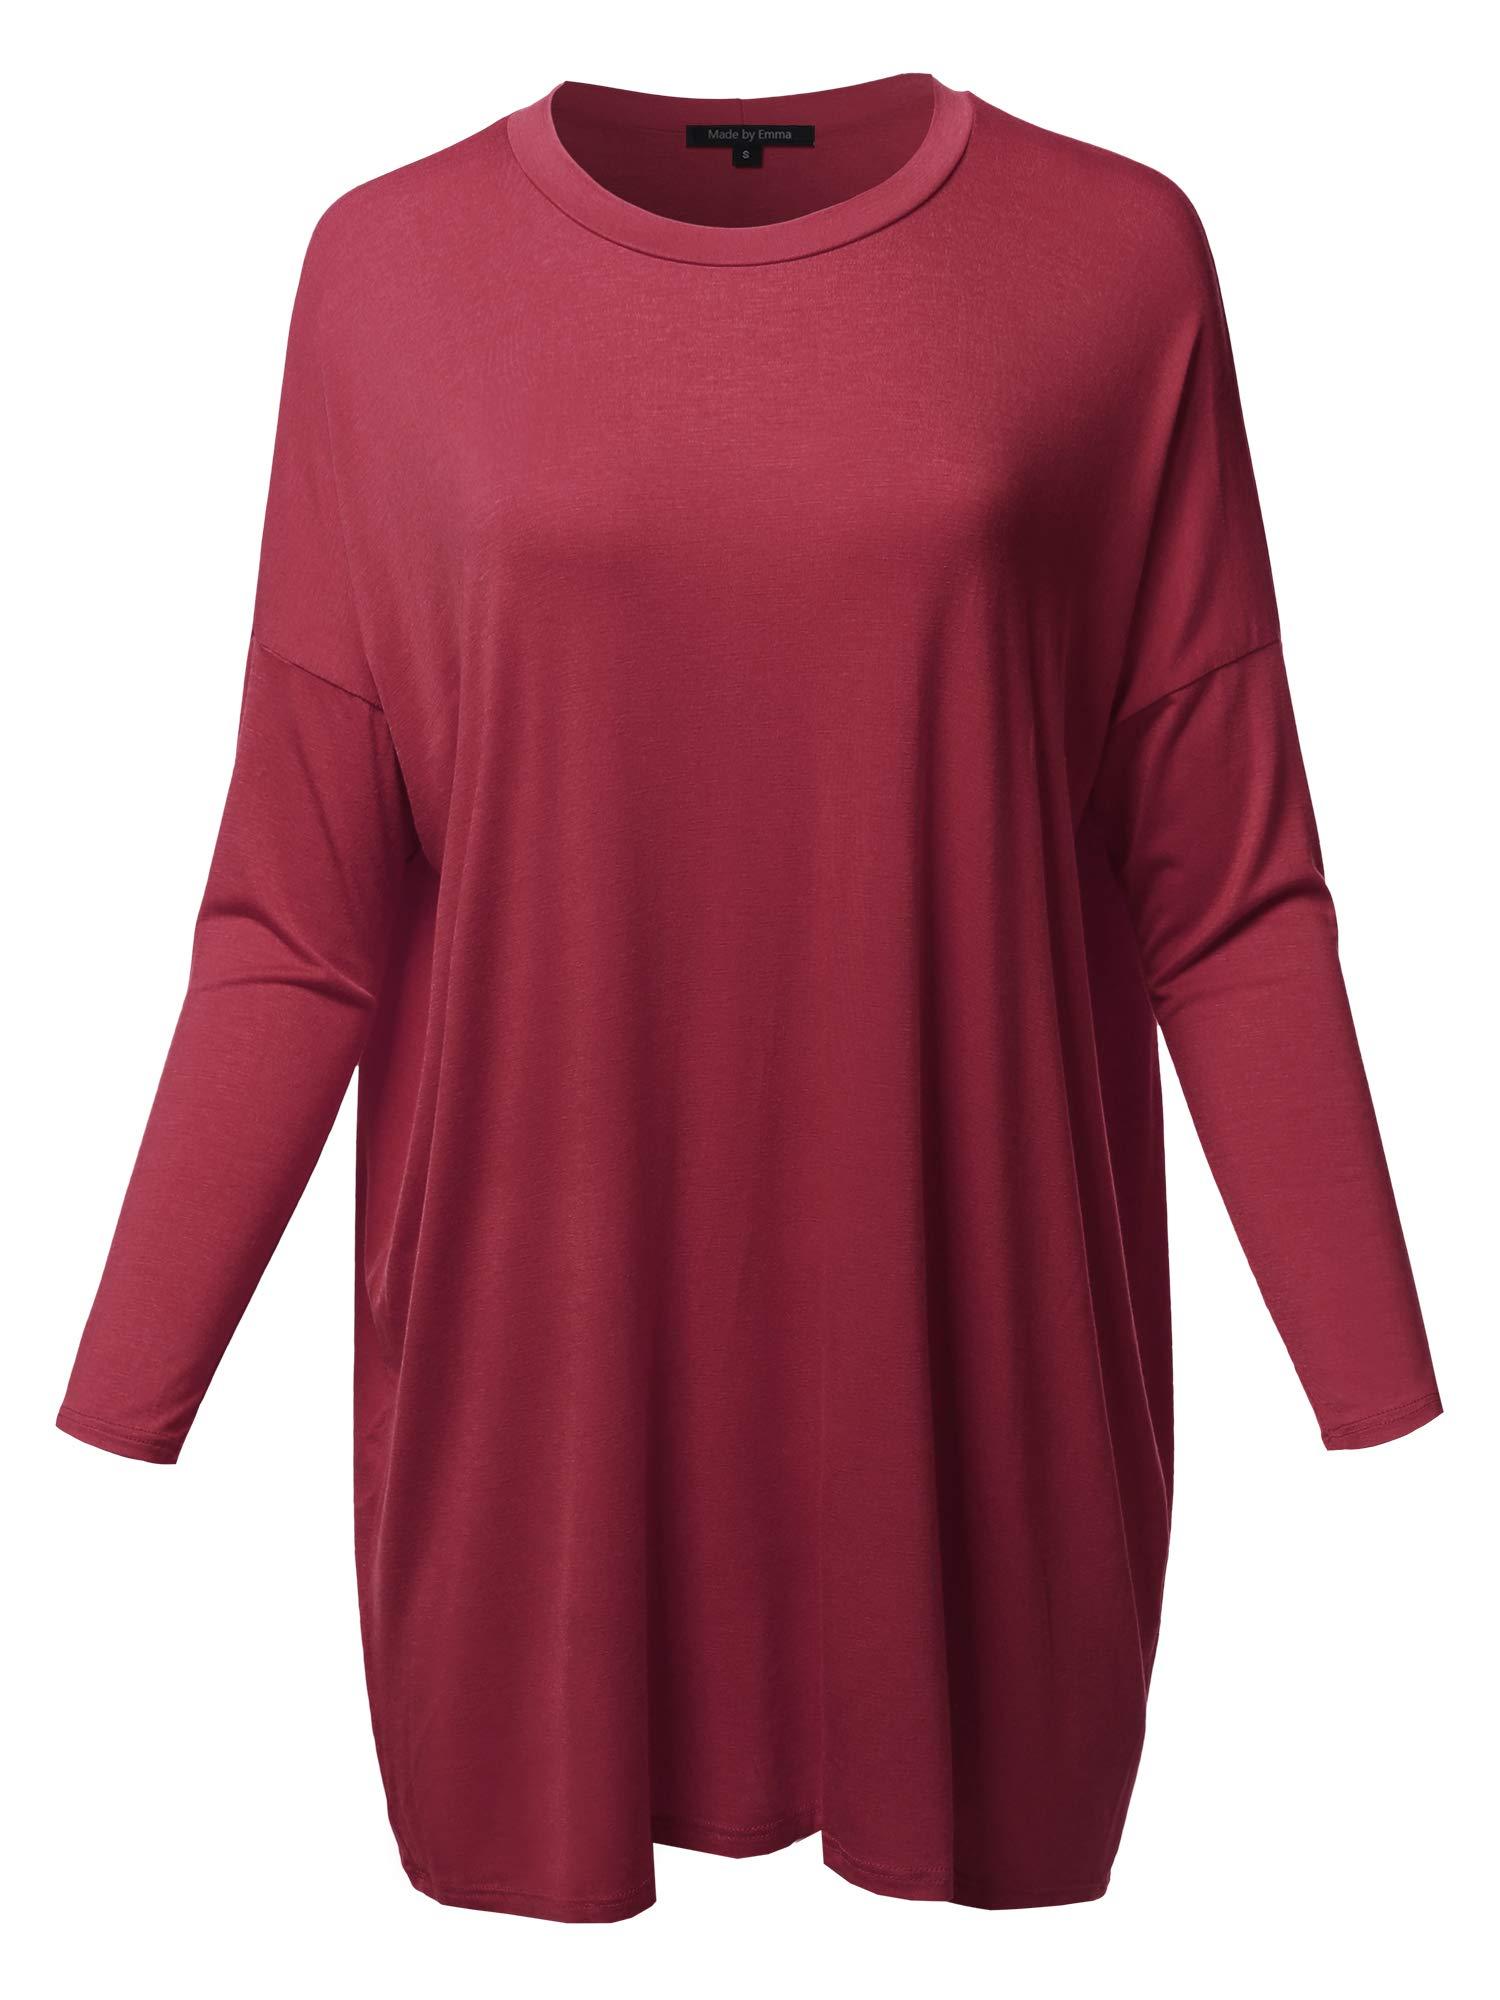 Women's Casual Stylish Solid Loose Fit Dolman Long 3/4 Sleeve Tunic Dress Top